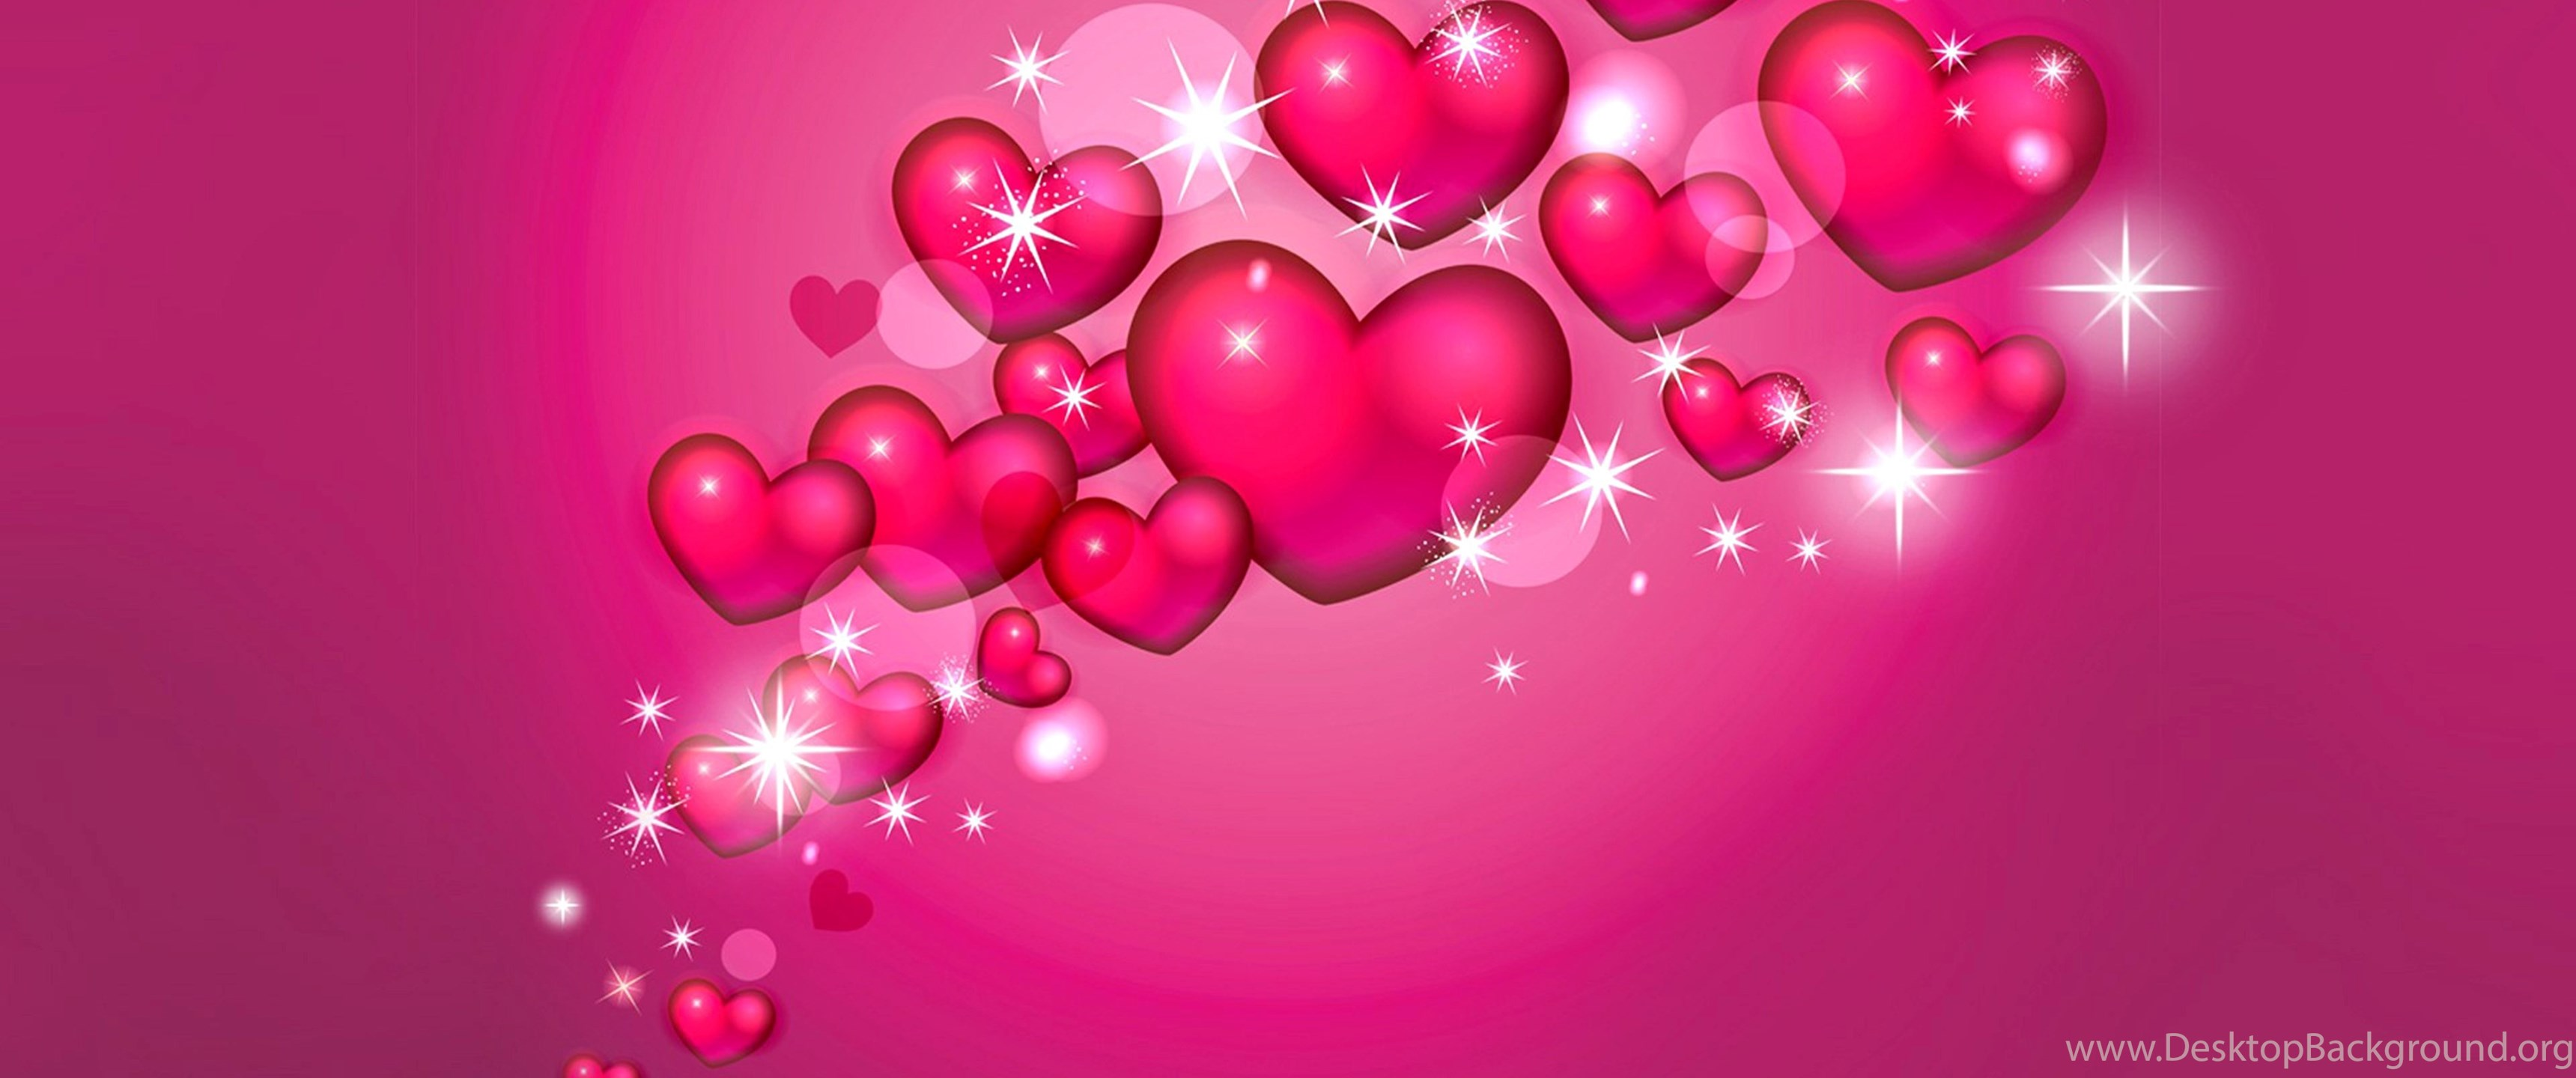 Pink Hearts And Stars Wallpapers Desktop Background